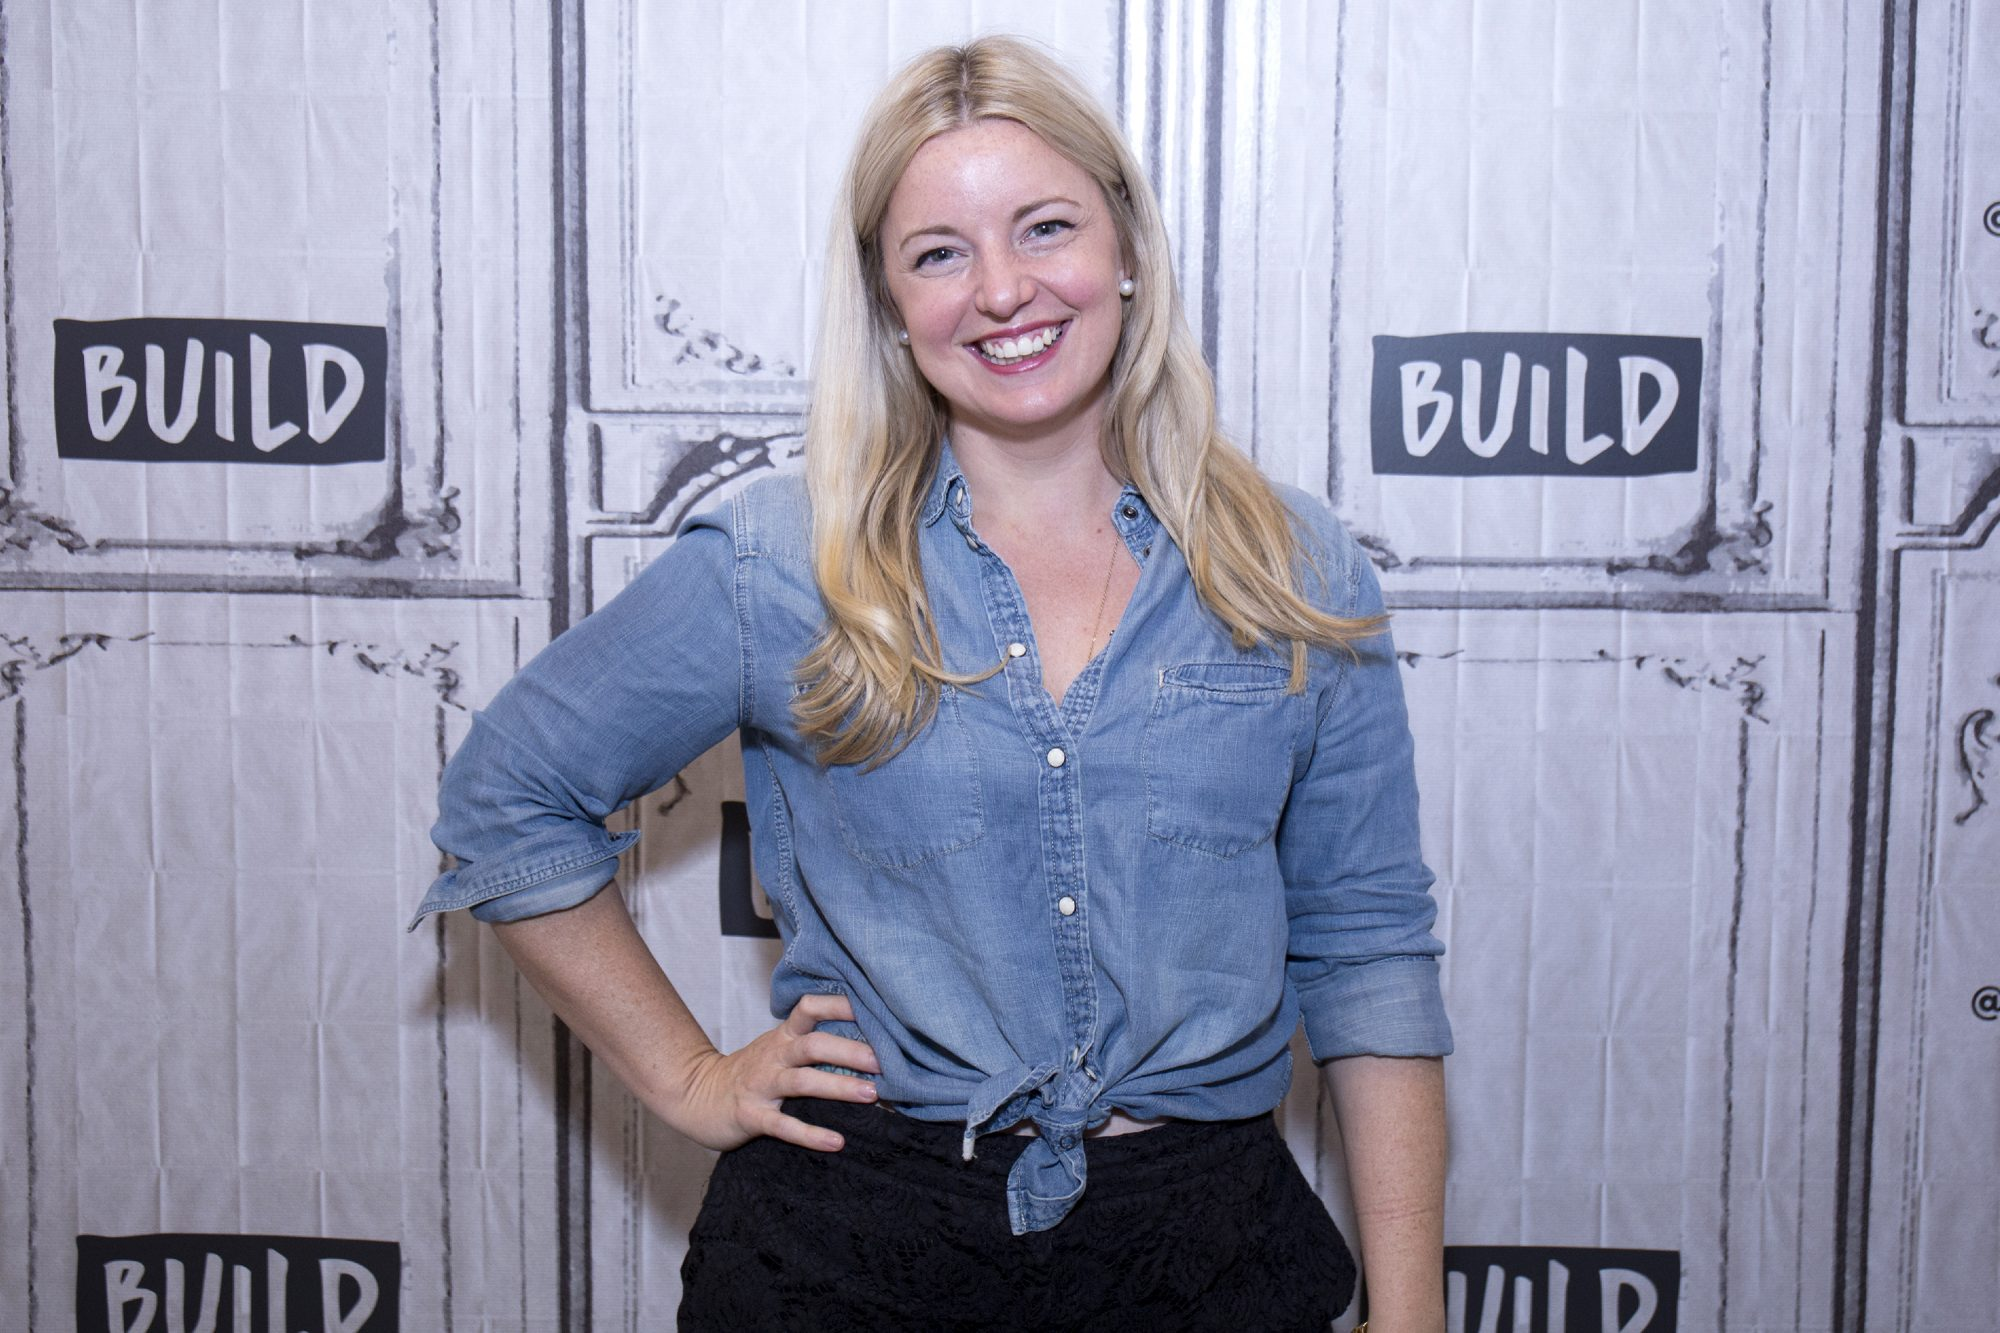 damaris phillips wearing blue denim shirt